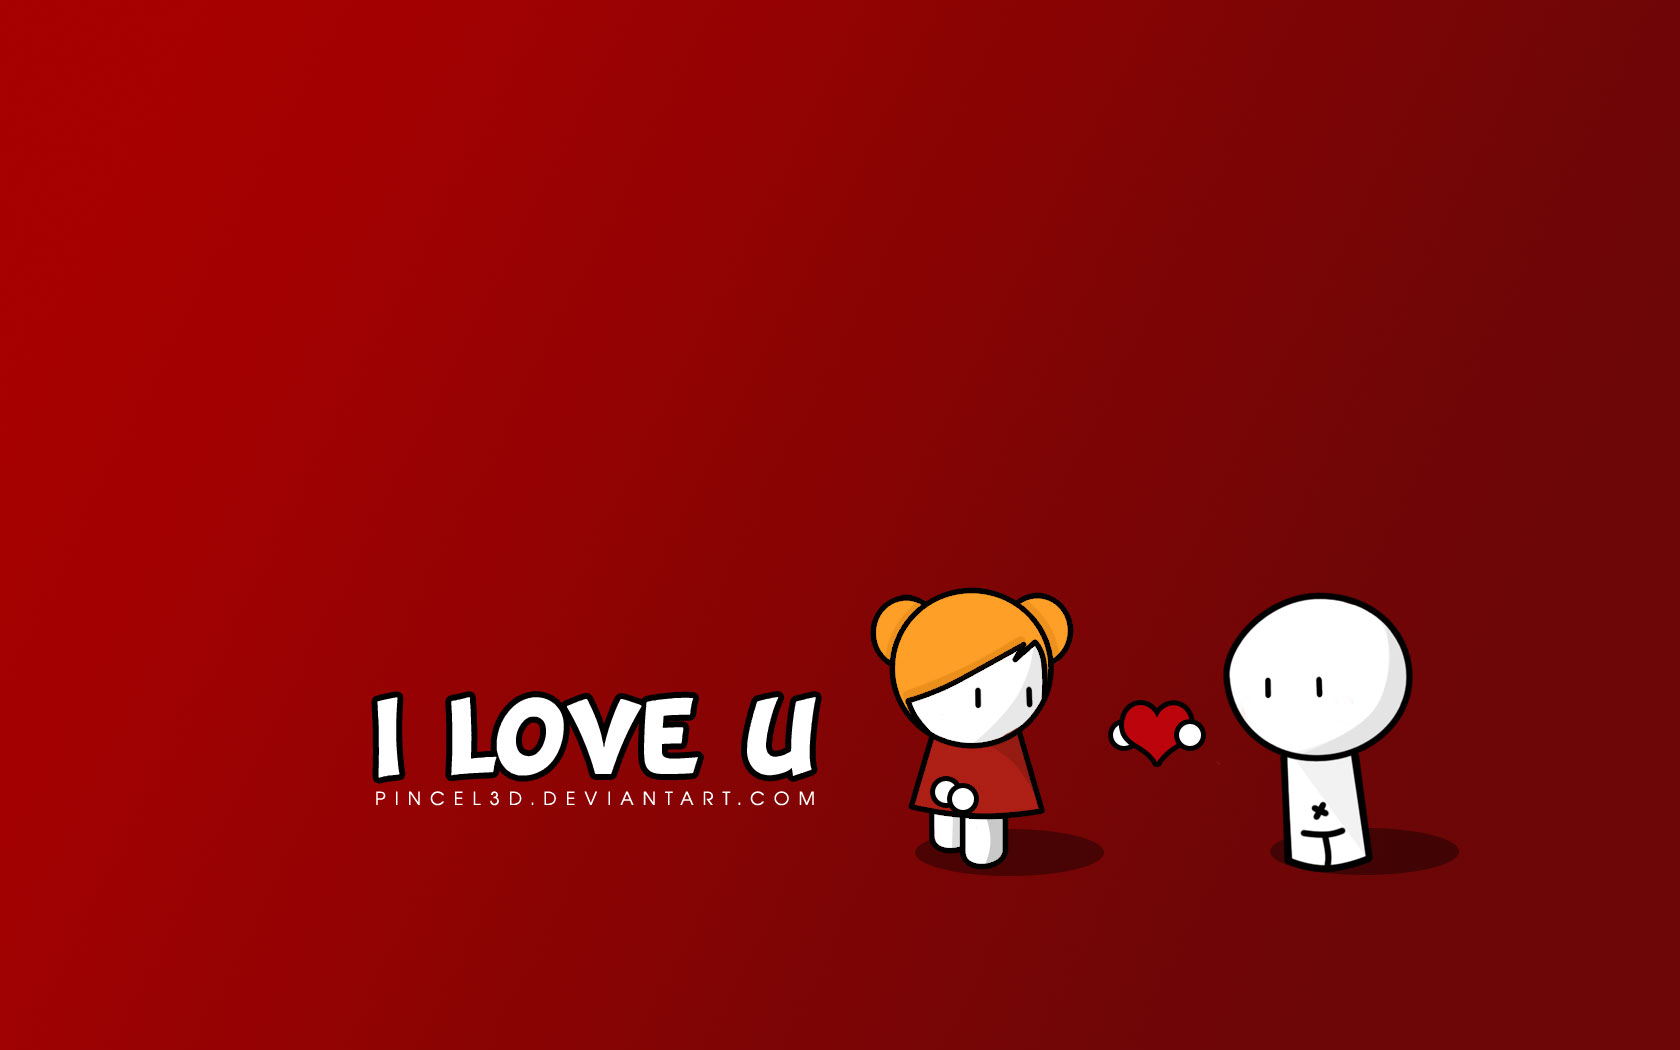 Image I Love U Wallpapers And Stock Photos